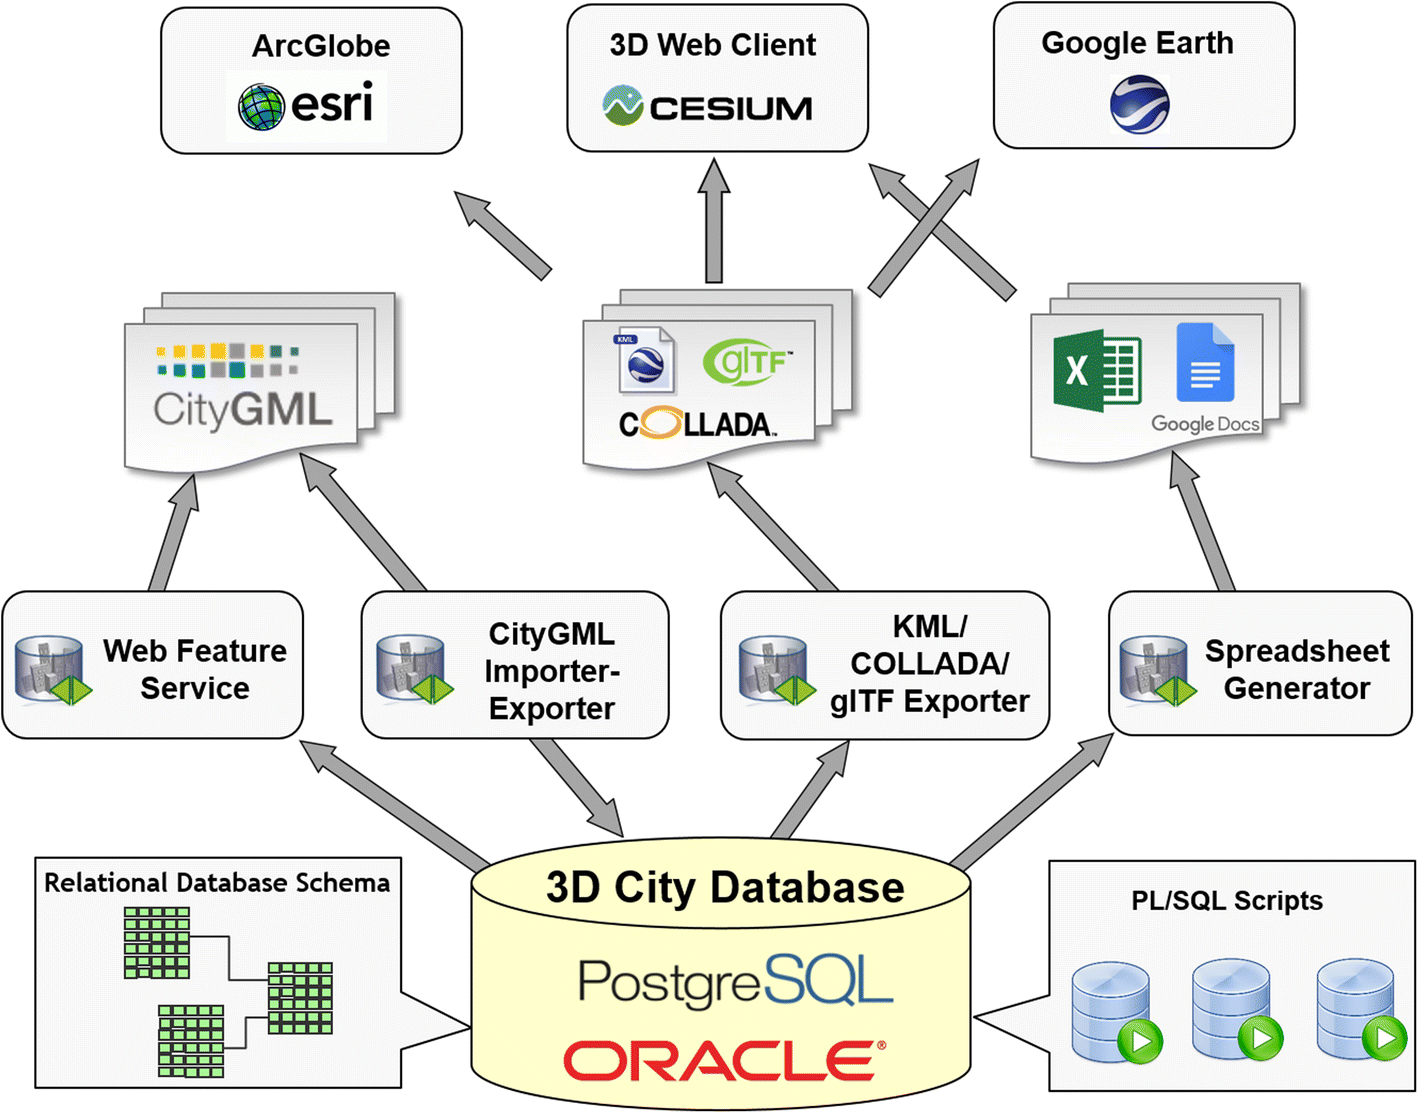 3DCityDB - a 3D geodatabase solution for the management